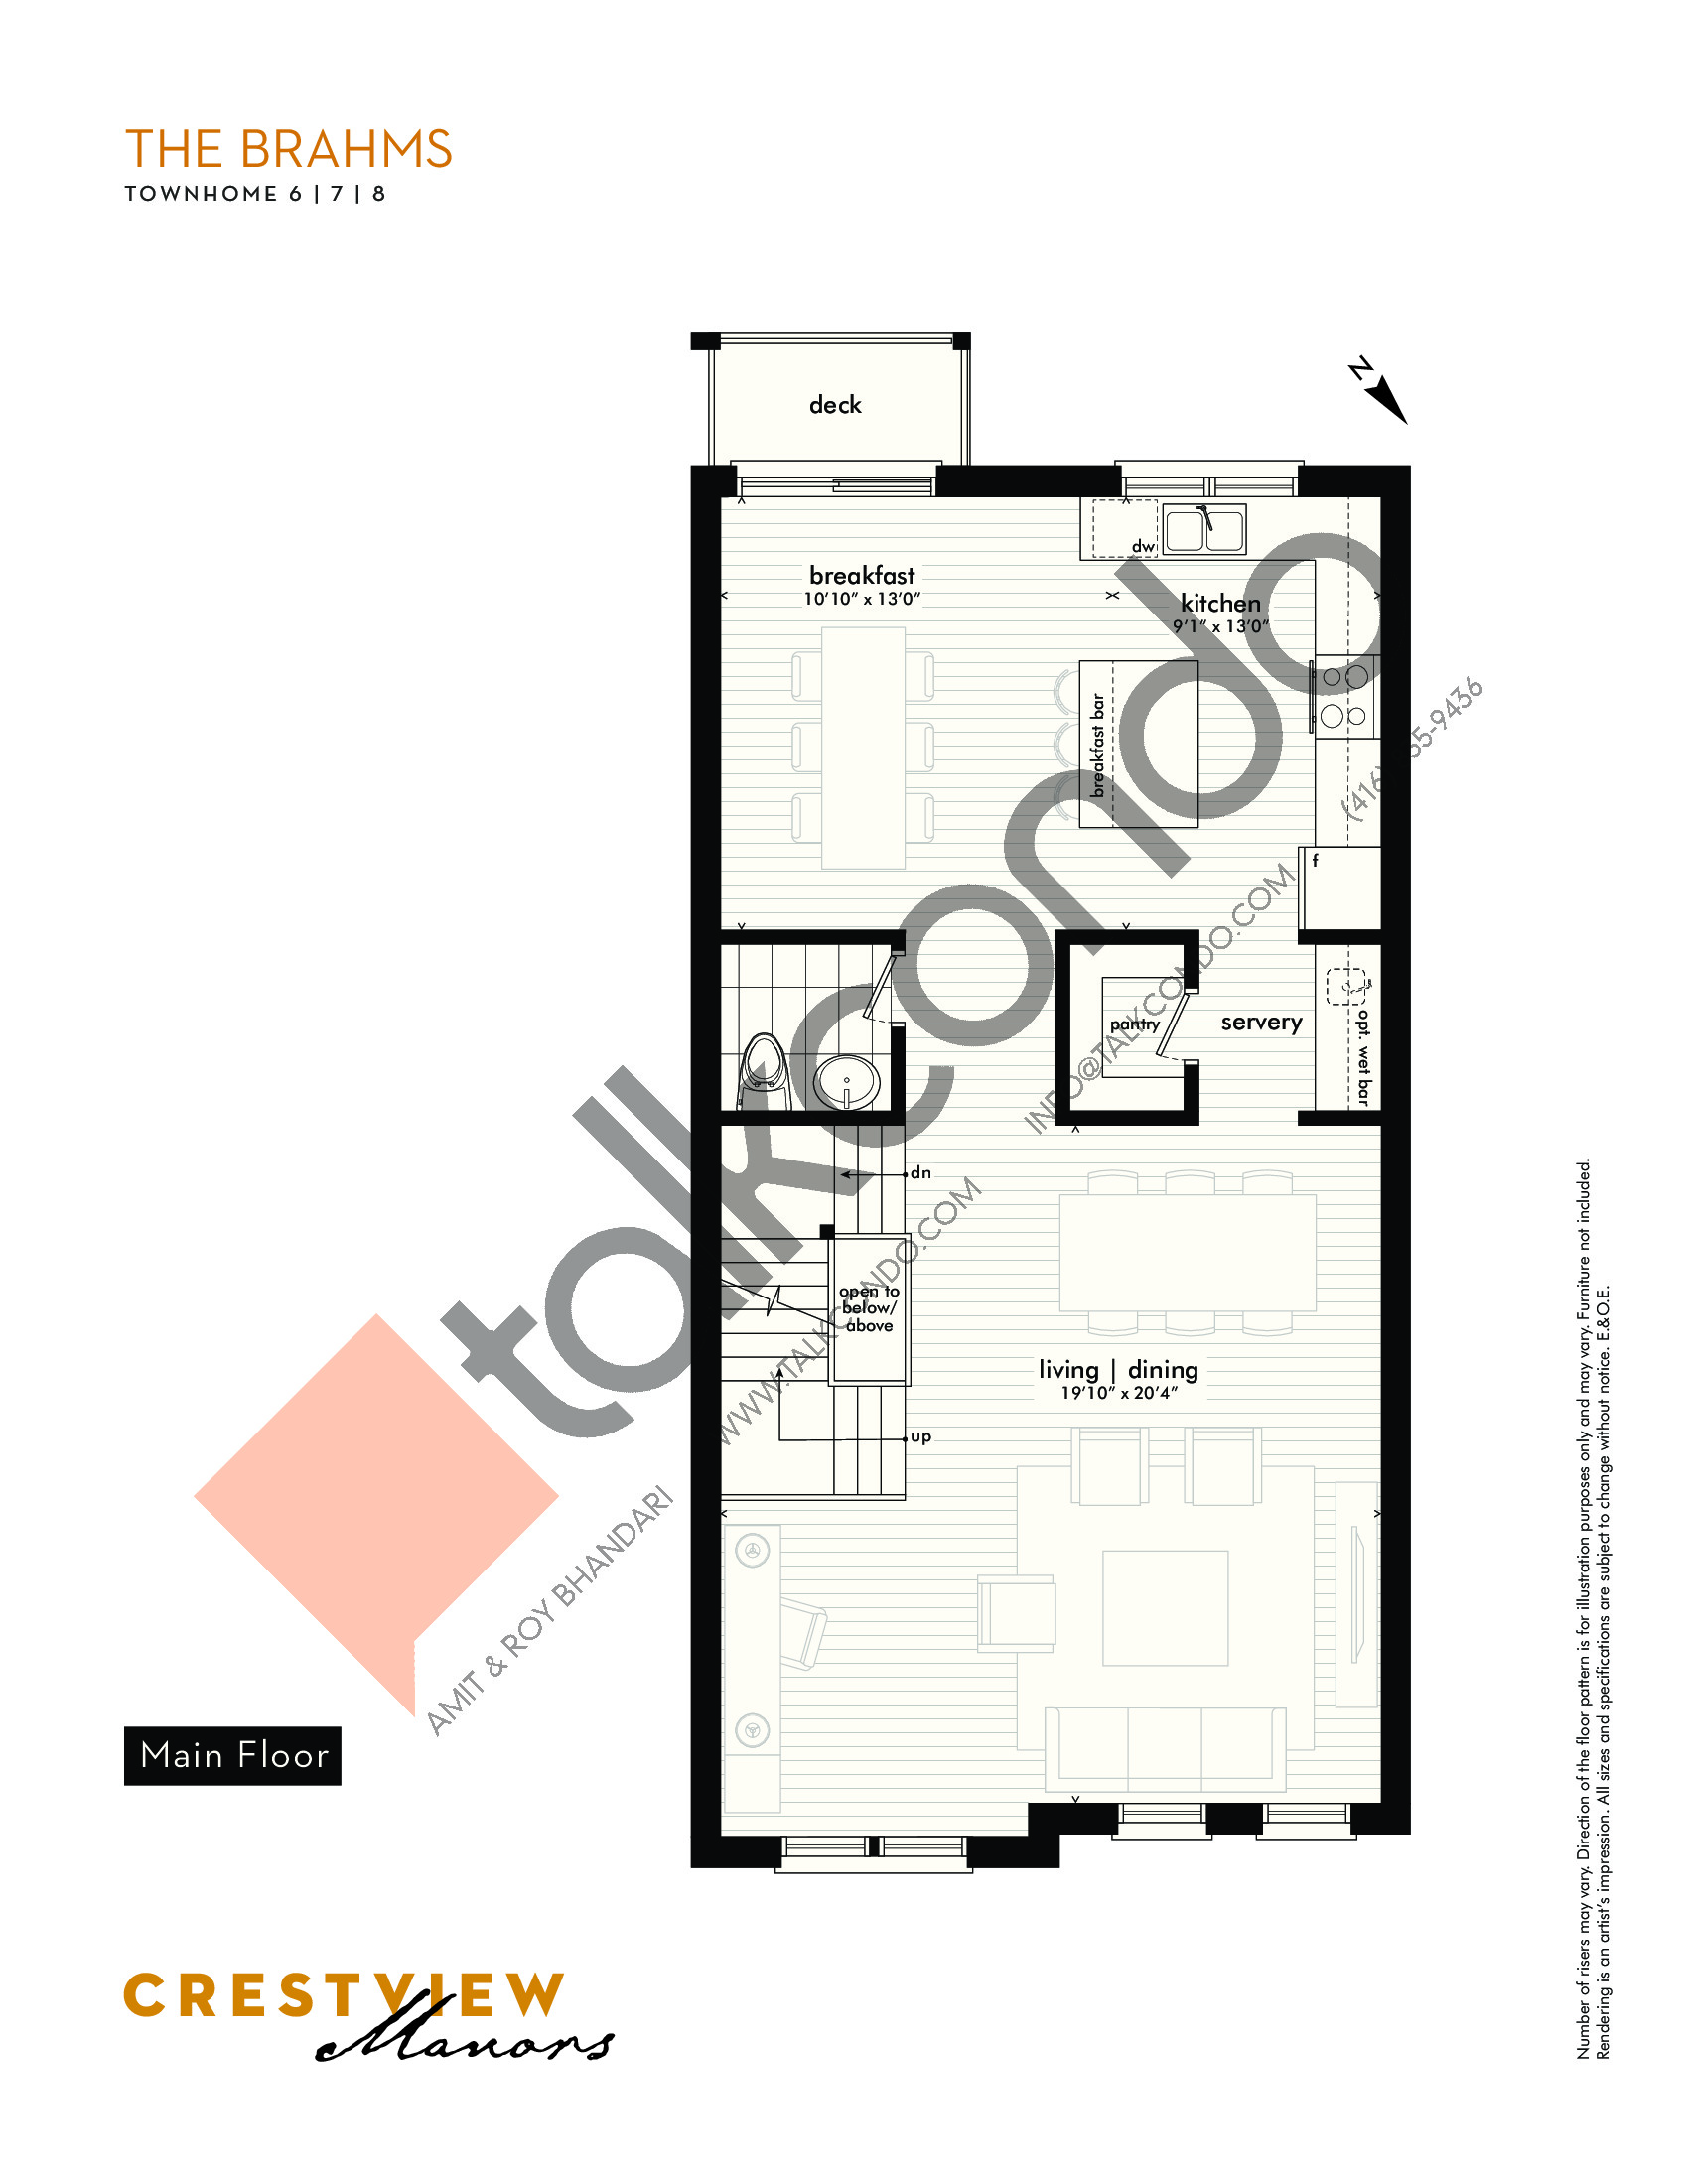 The Brahms - Main Floor Floor Plan at Crestview Manors - 2282 sq.ft